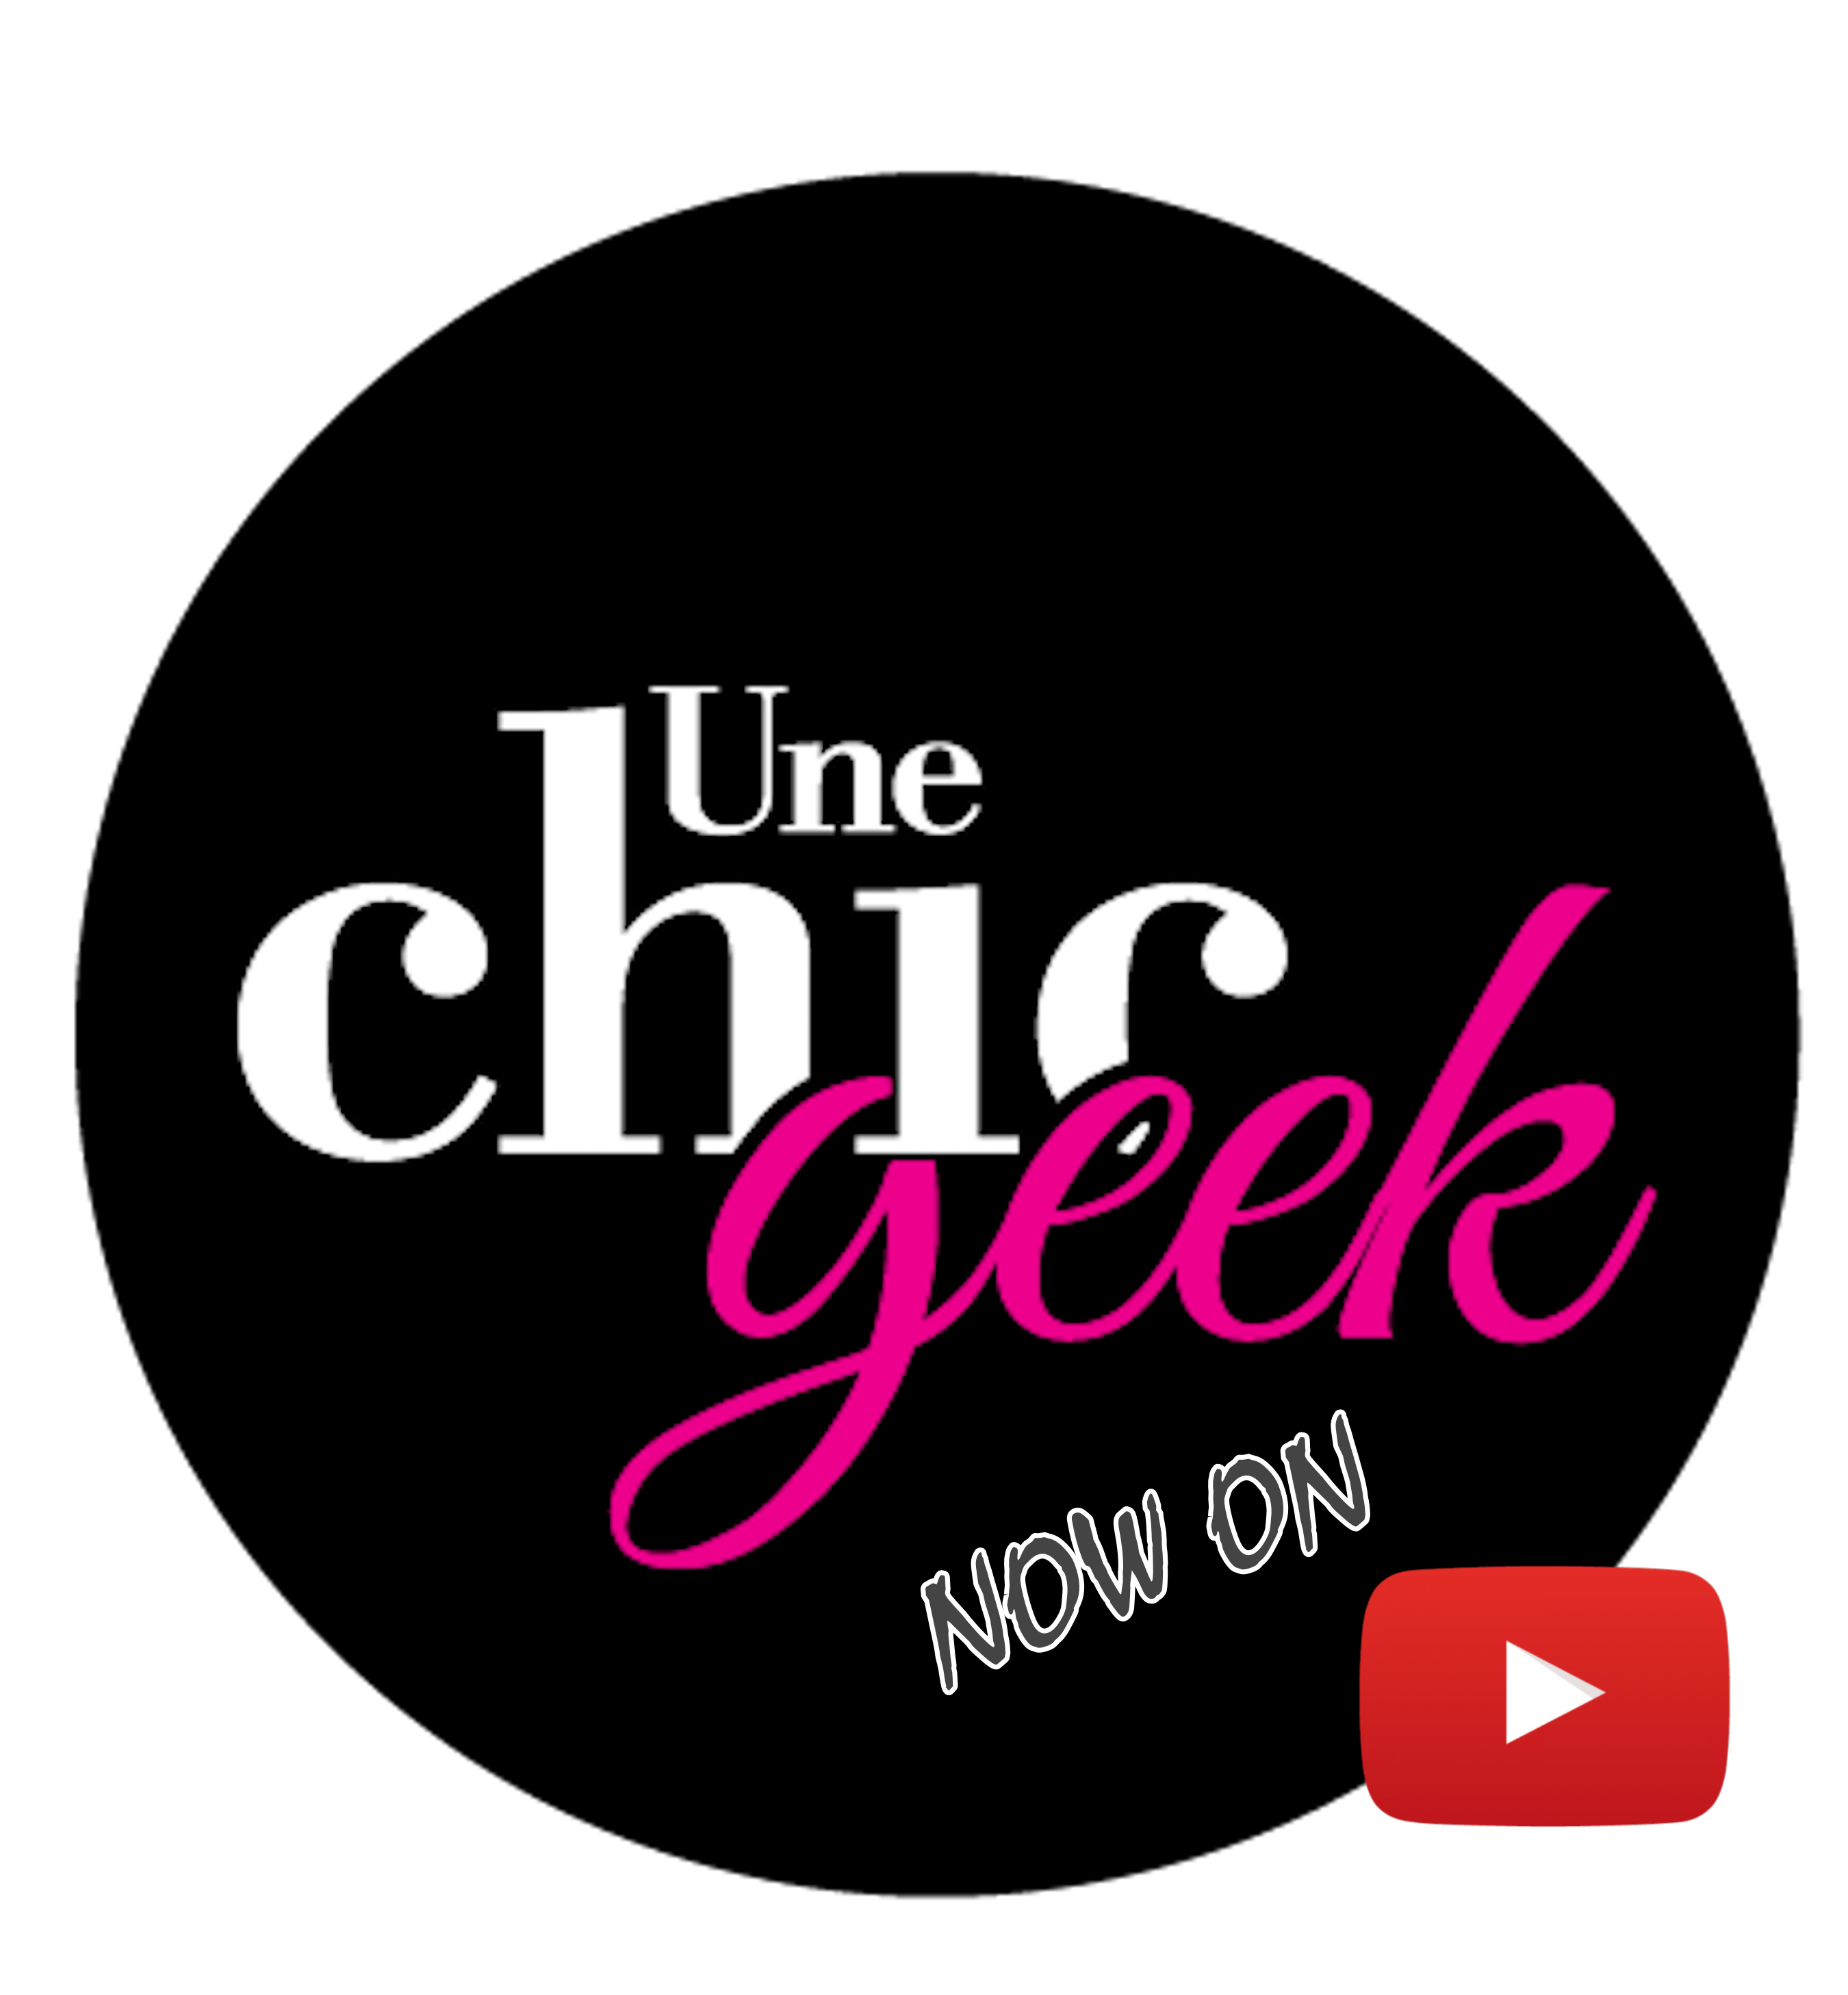 youtube une chic geek